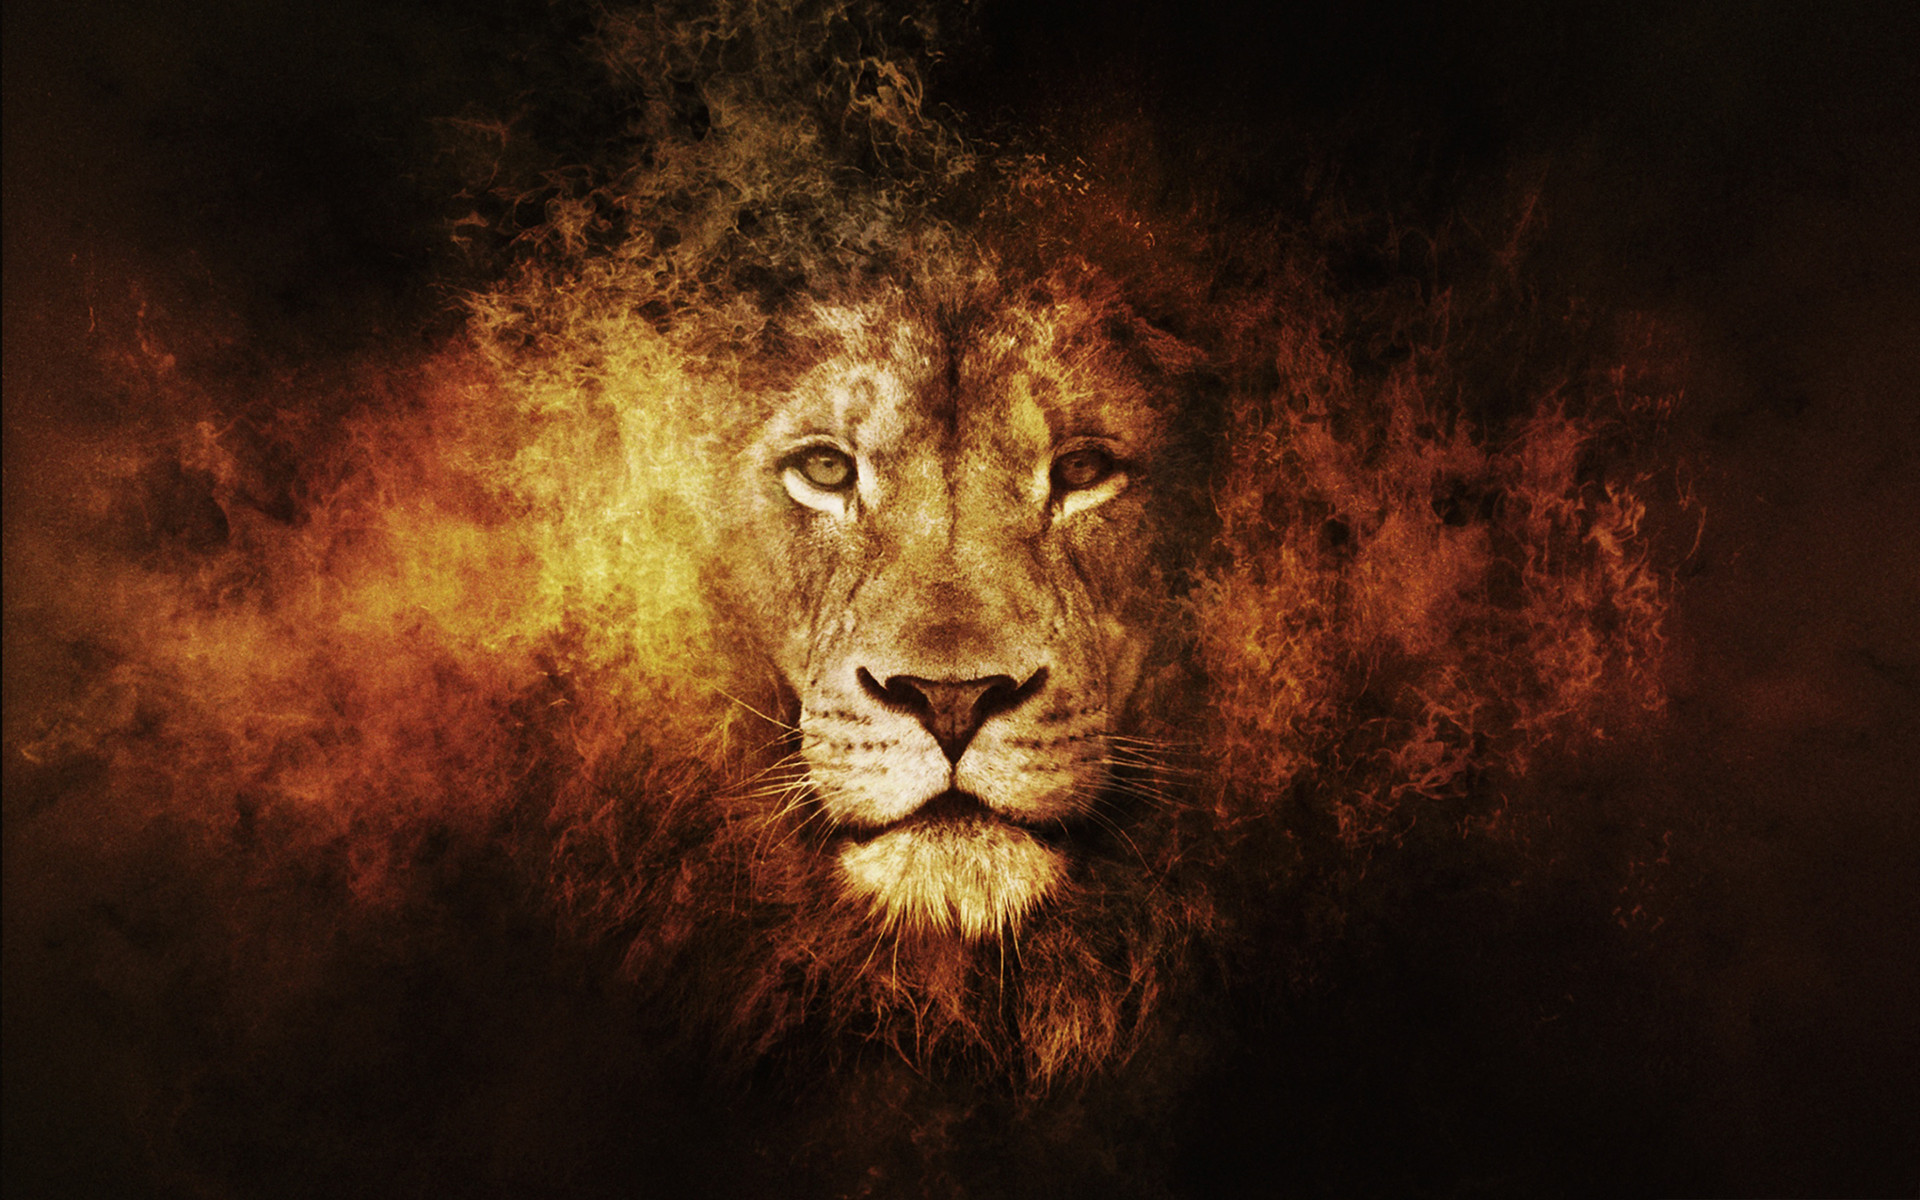 abstract lion wallpaper